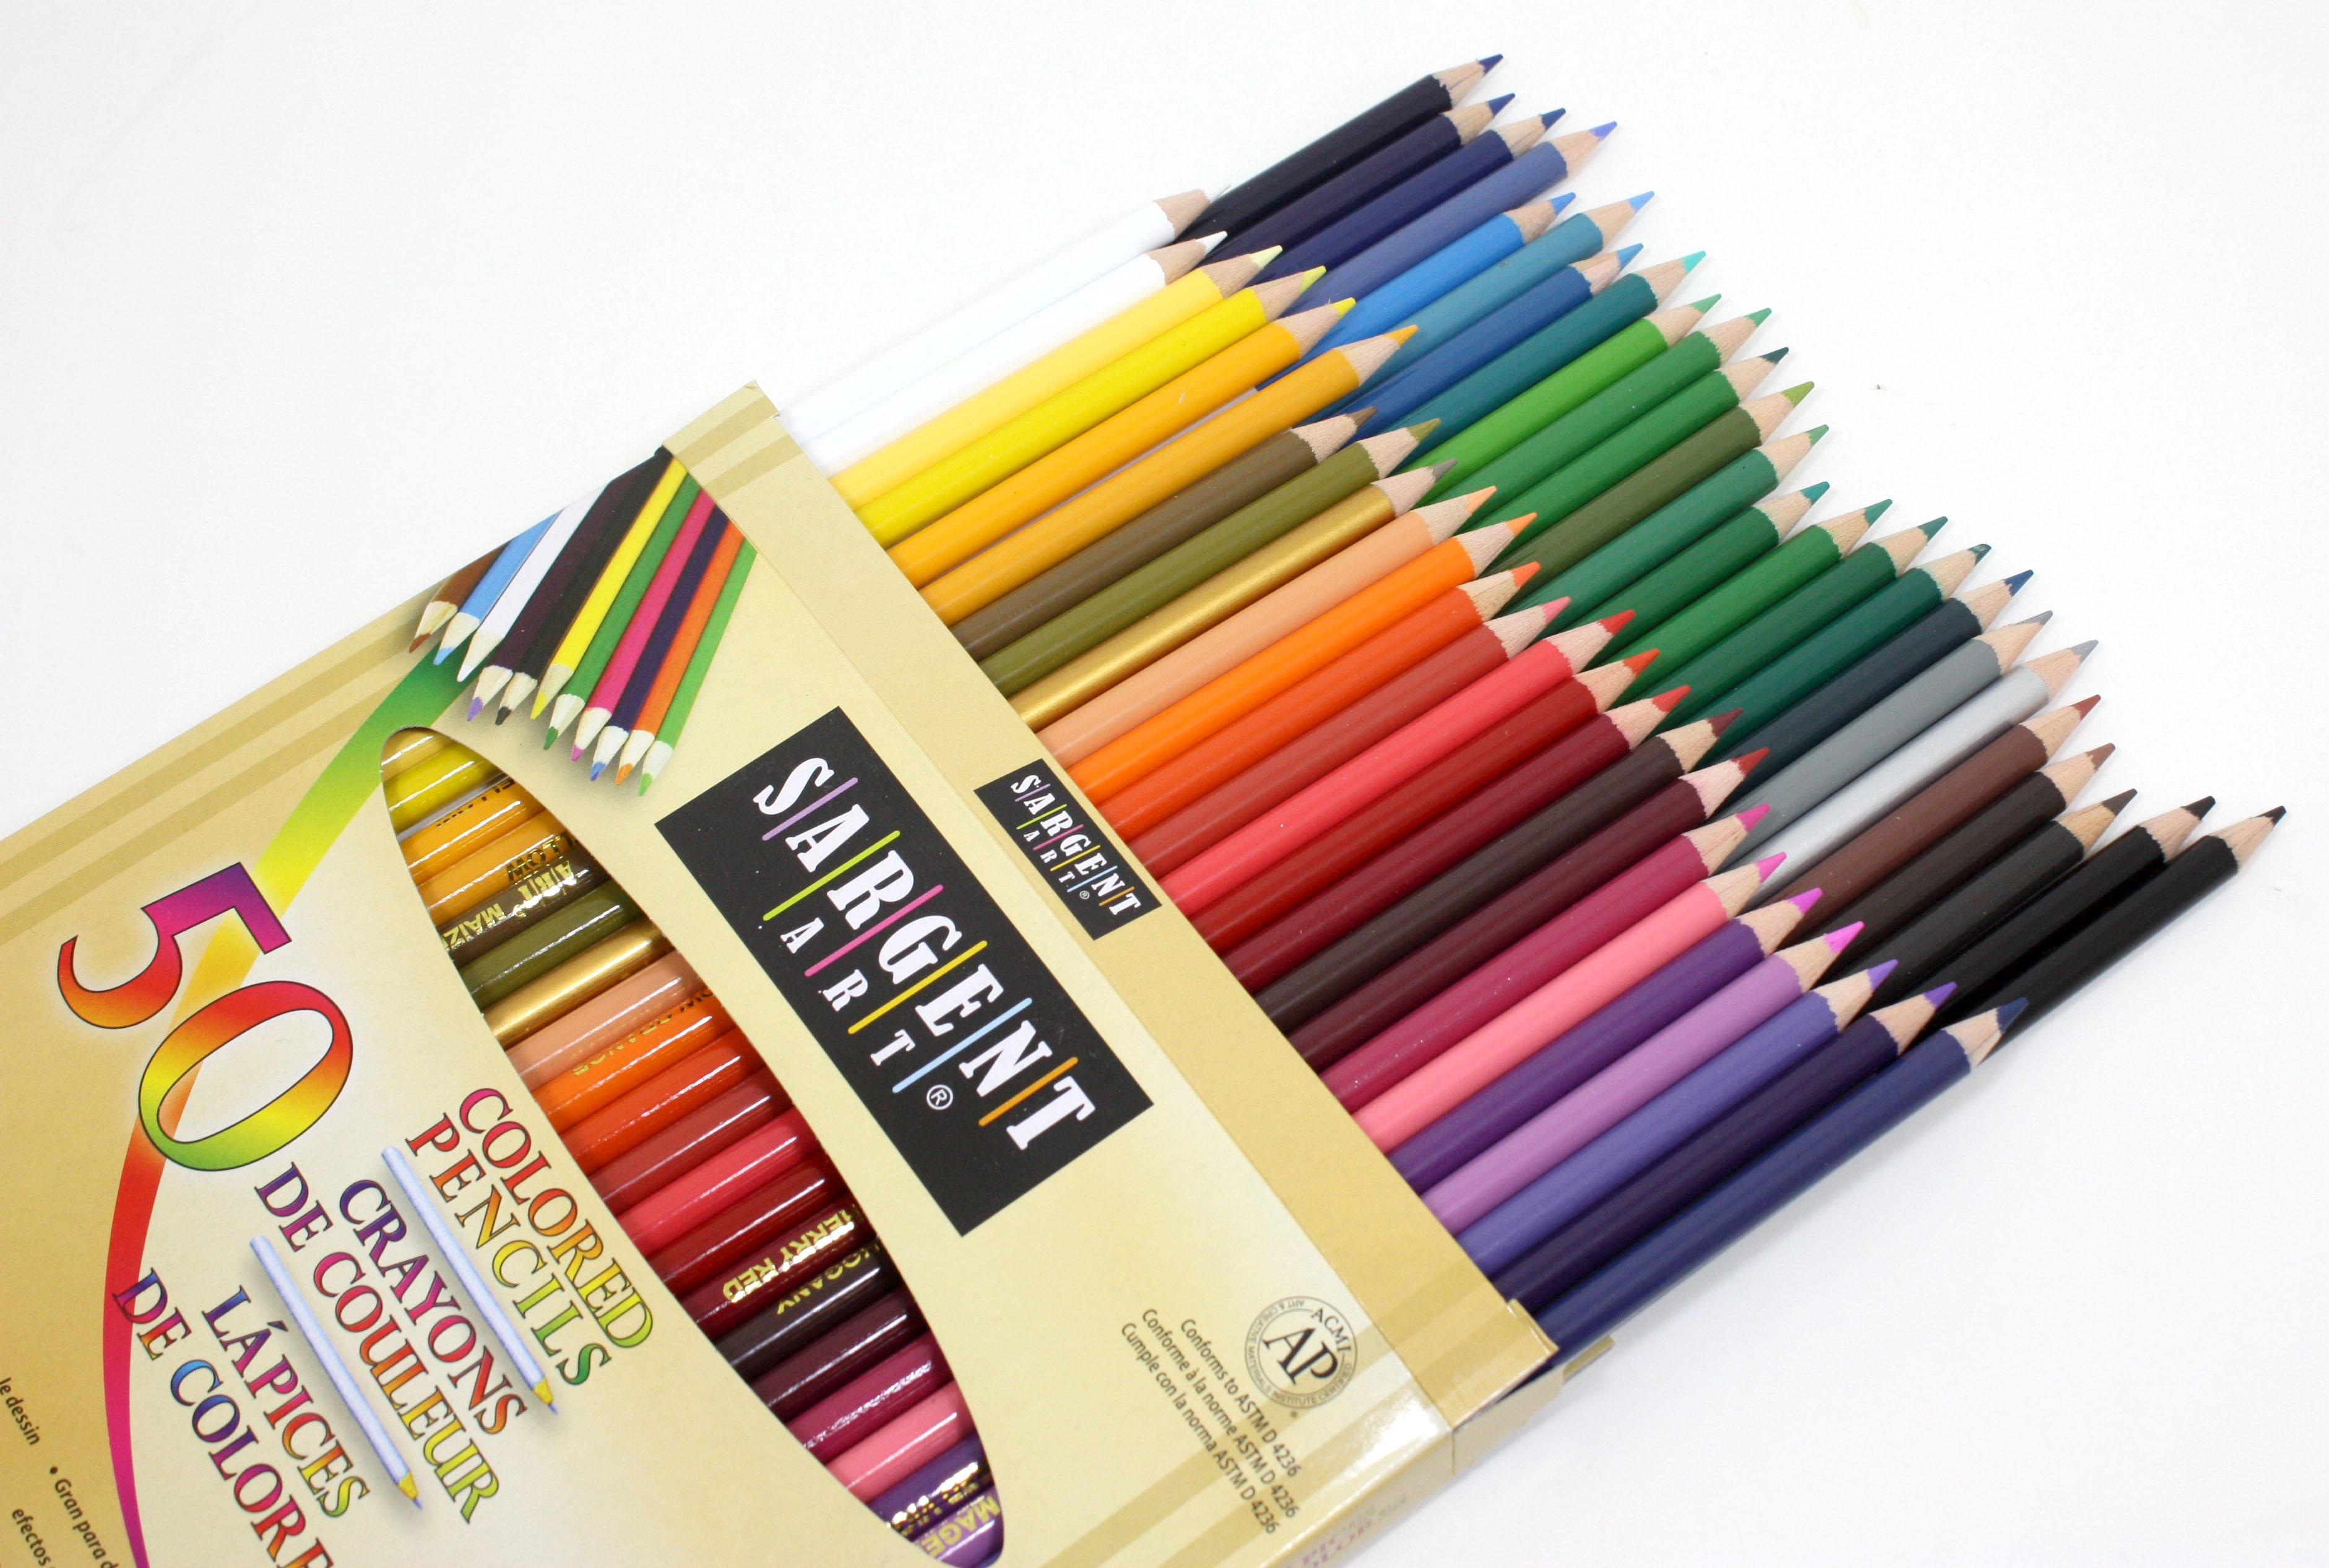 sargent art 22 7251 50 count assorted colored pencils accessory